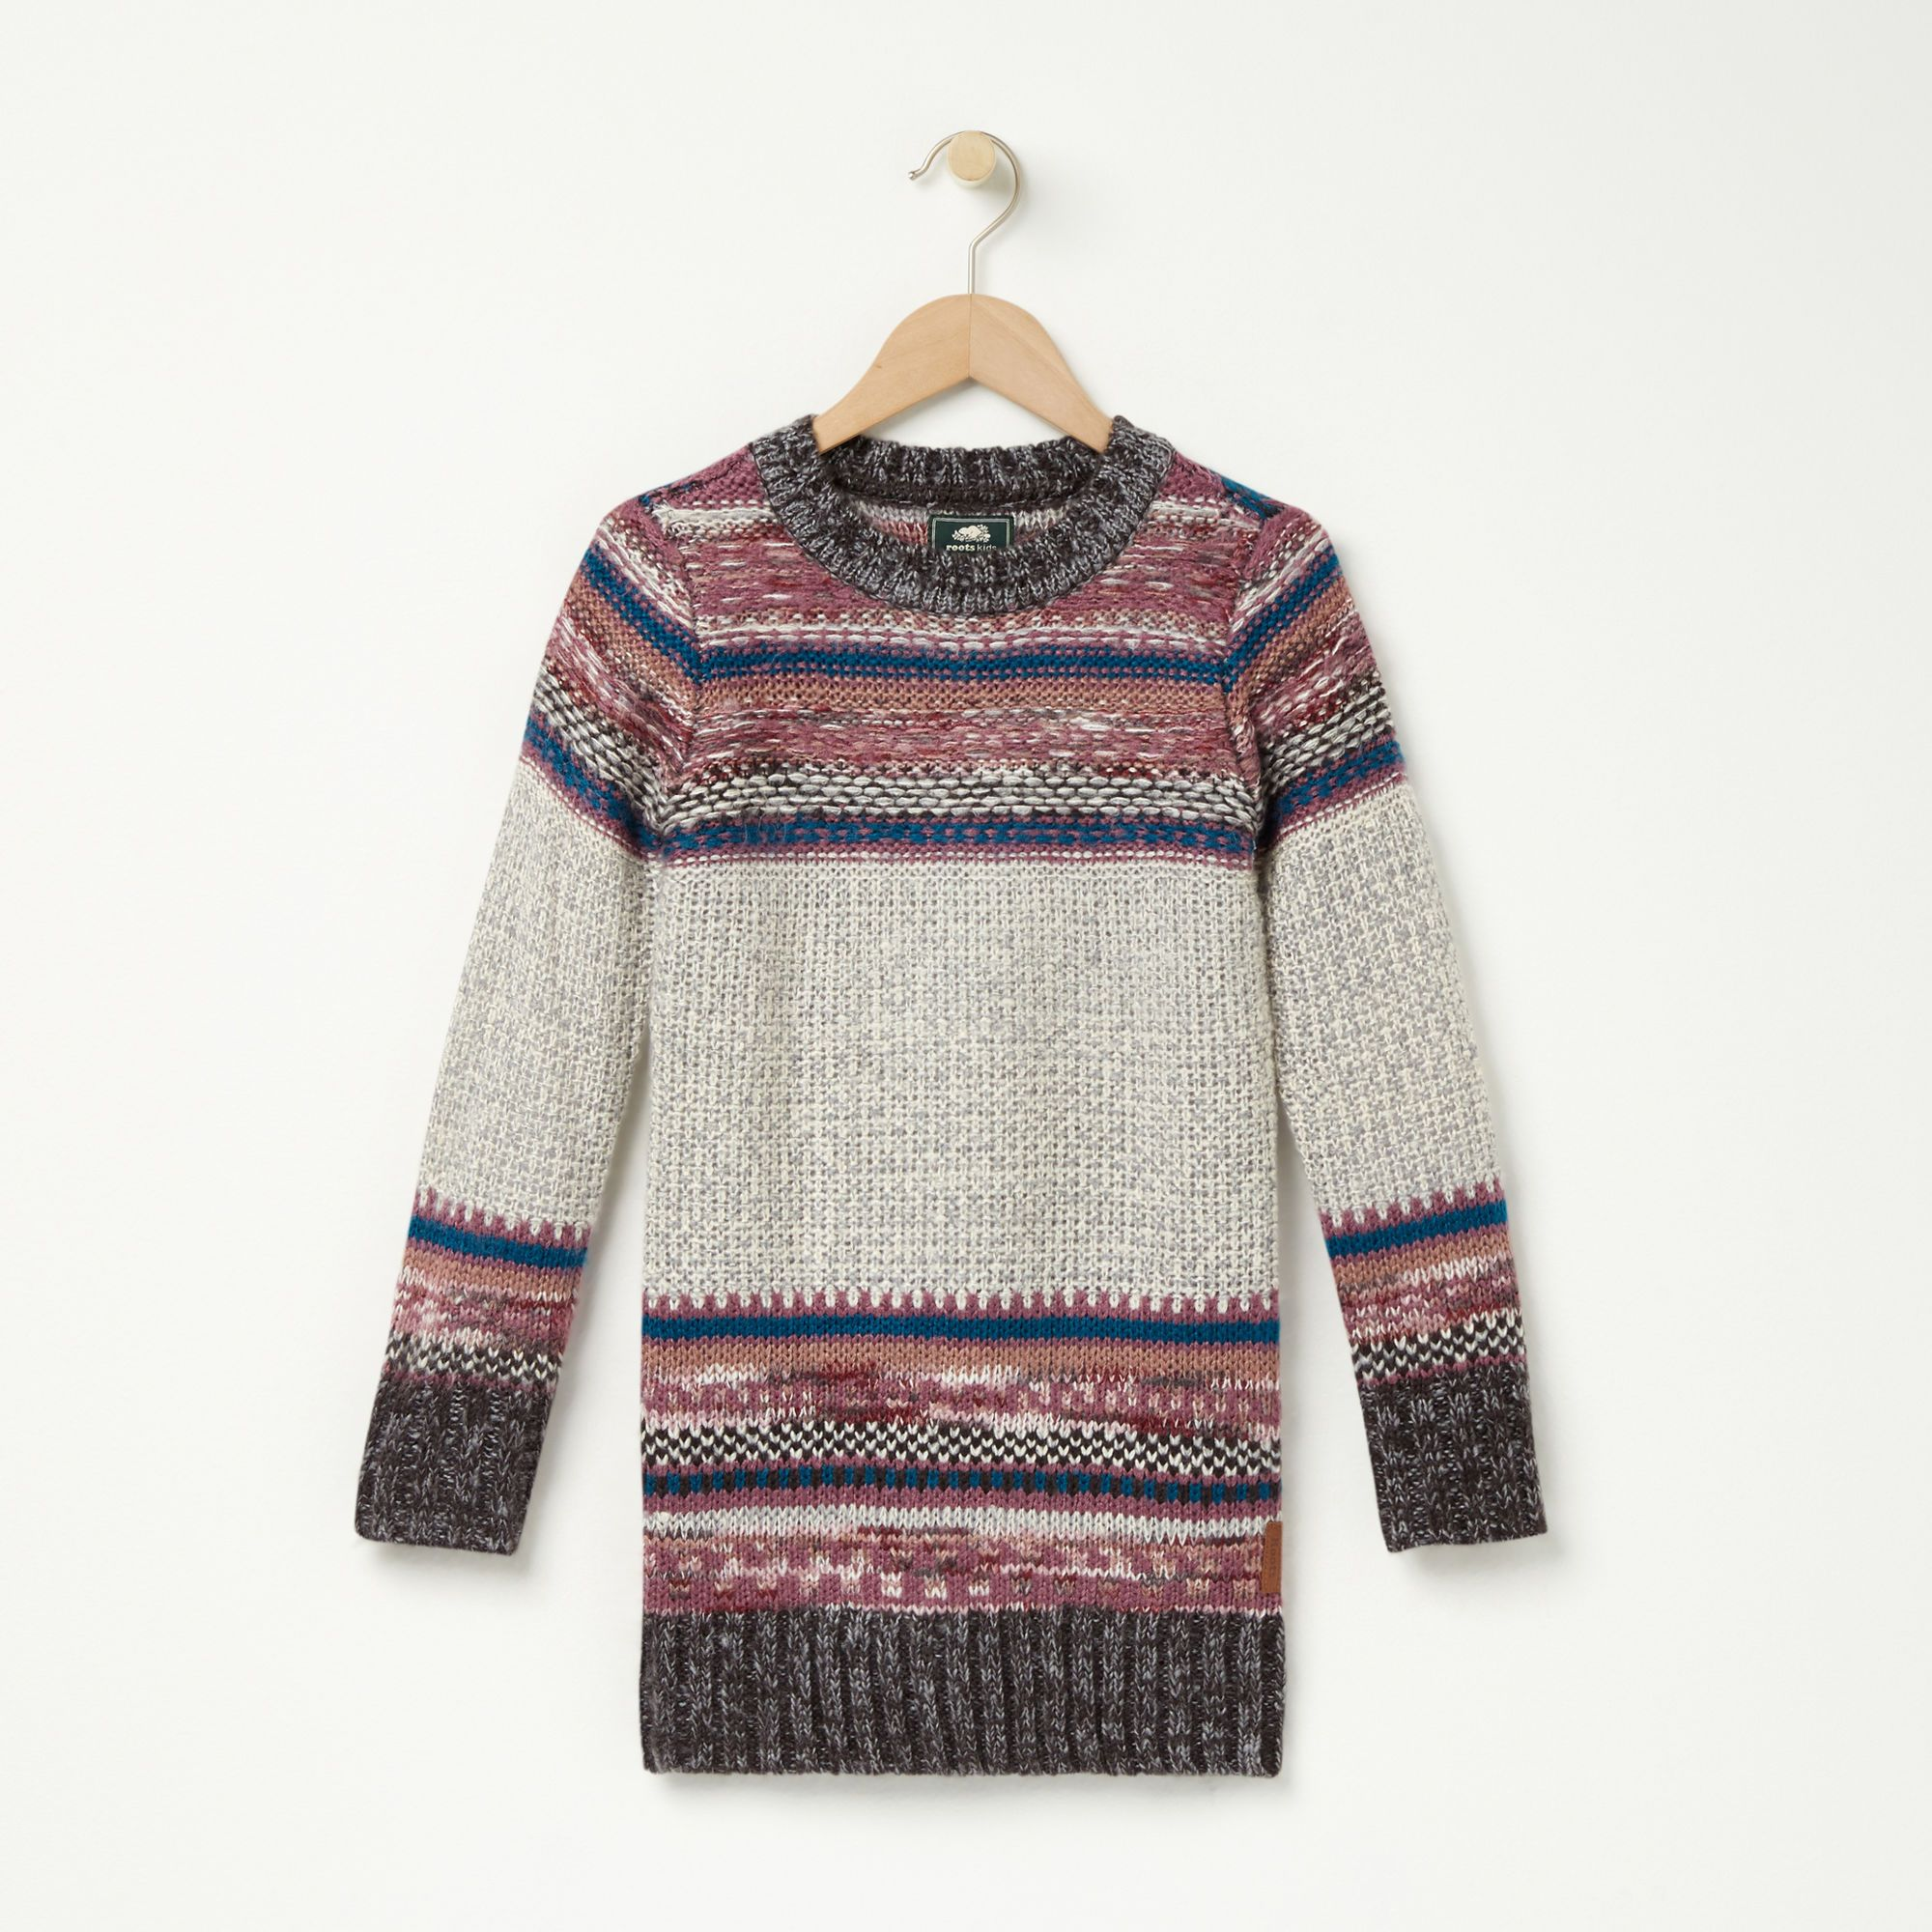 www.roots.com ca en girls-fair-isle-sweater-tunic-08010165.html ...